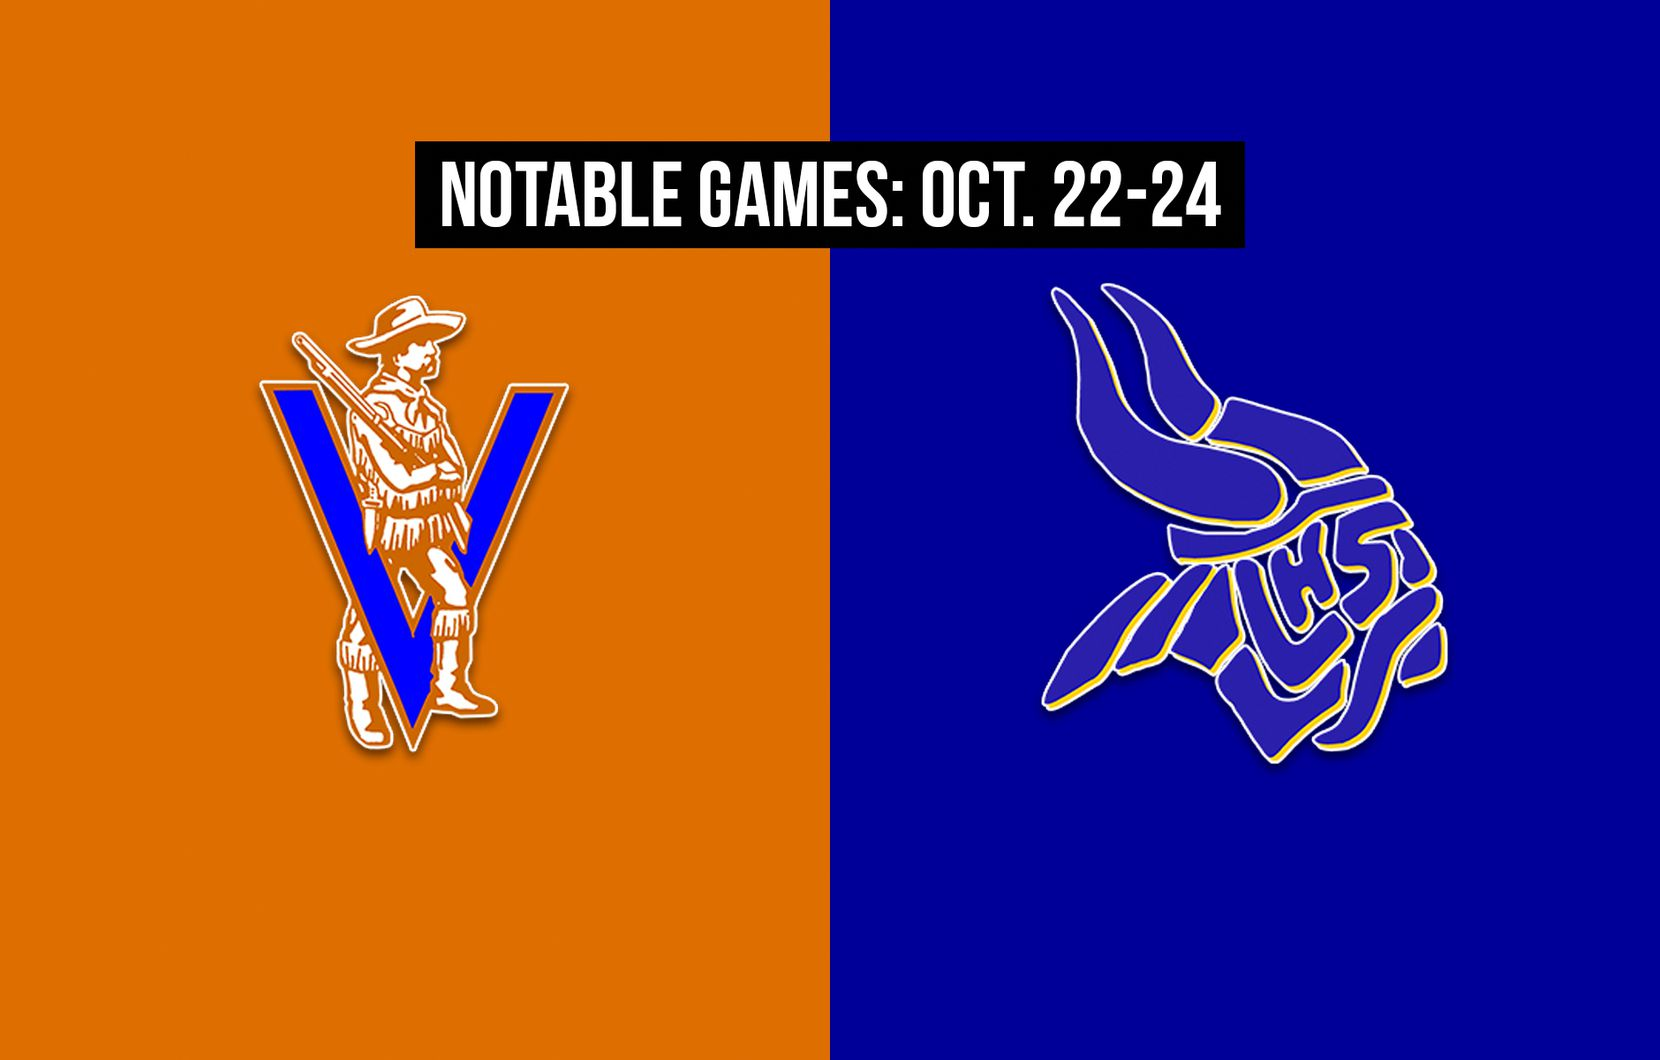 Notable games for the week of Oct. 22-24 of the 2020 season: Arlington Bowie vs. Arlington Lamar.